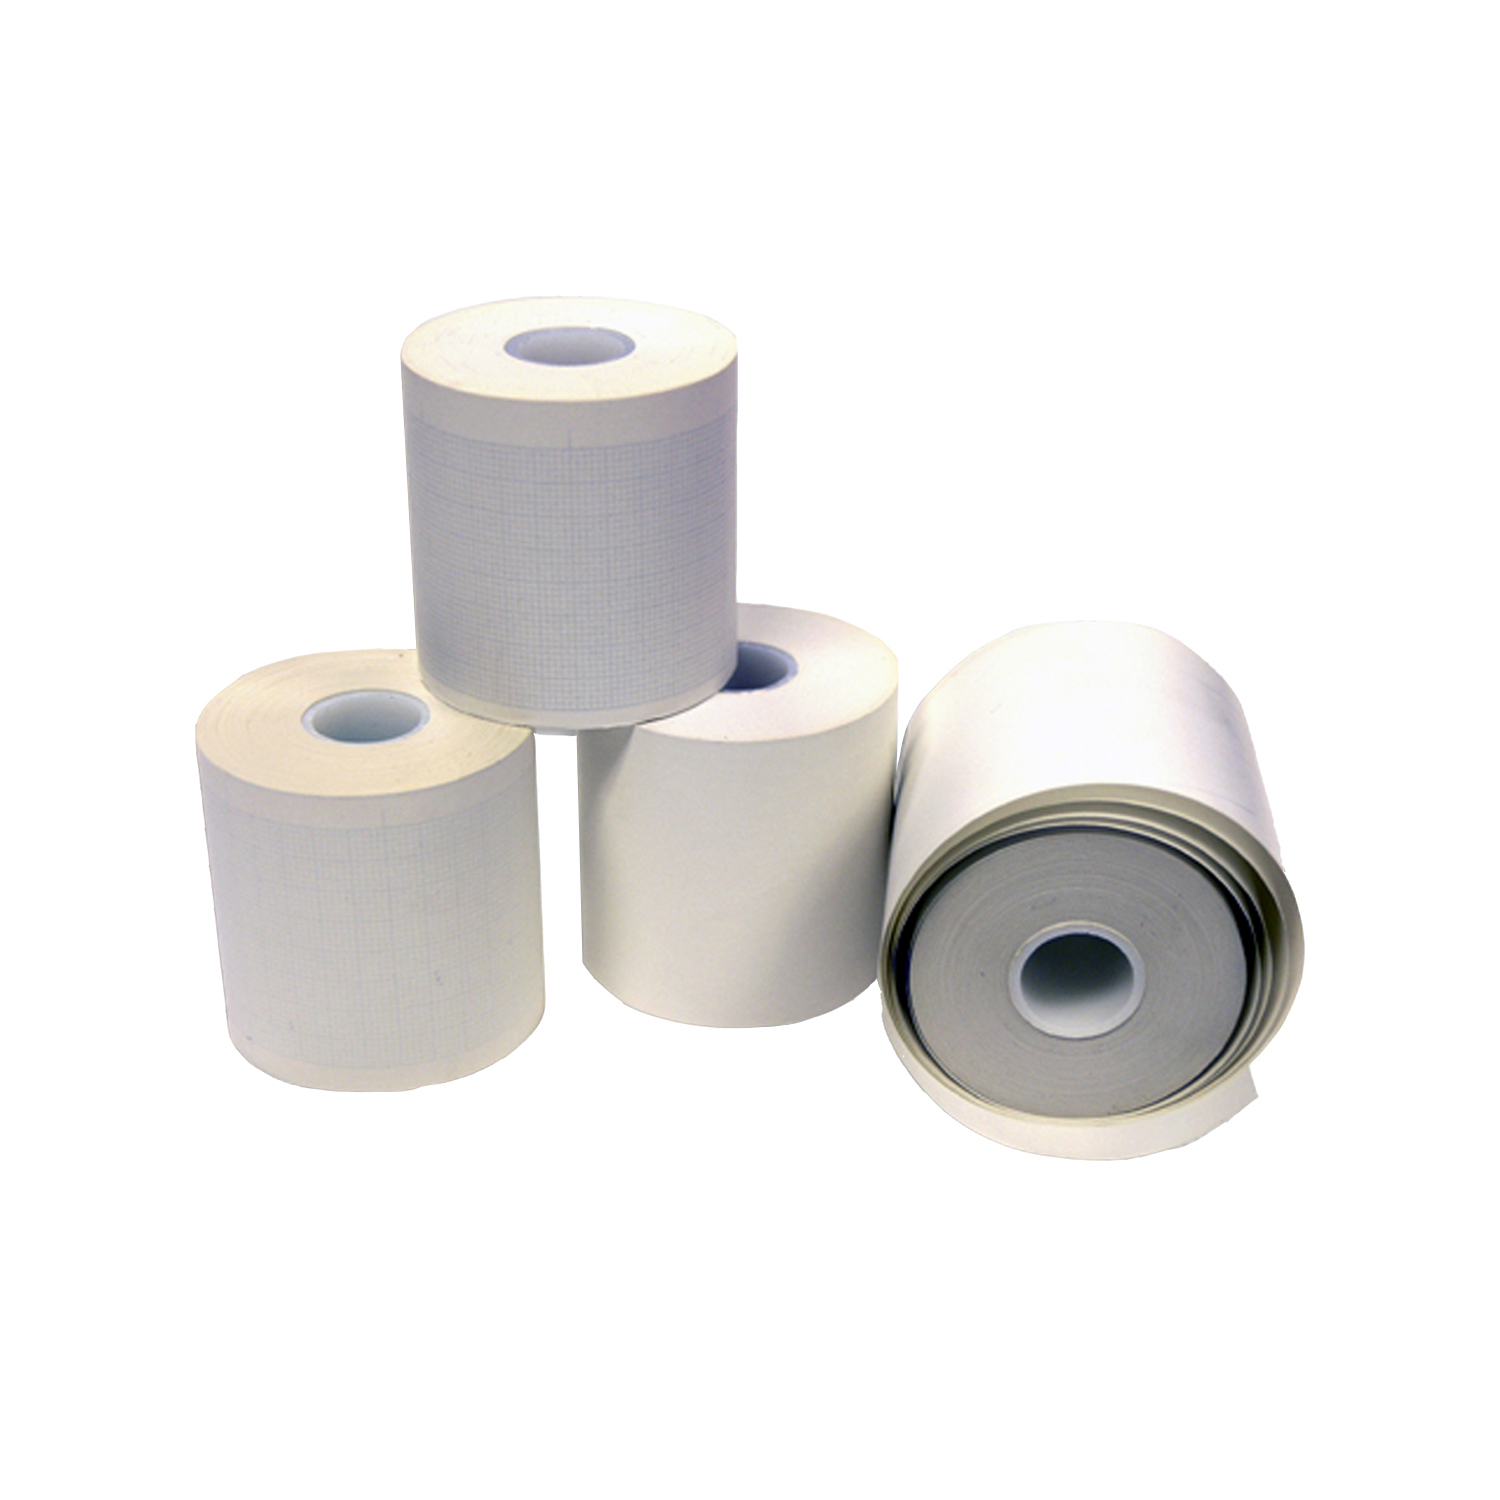 Thermal Printer Paper Compatible with Physio-Control LIFEPAK 12, 20